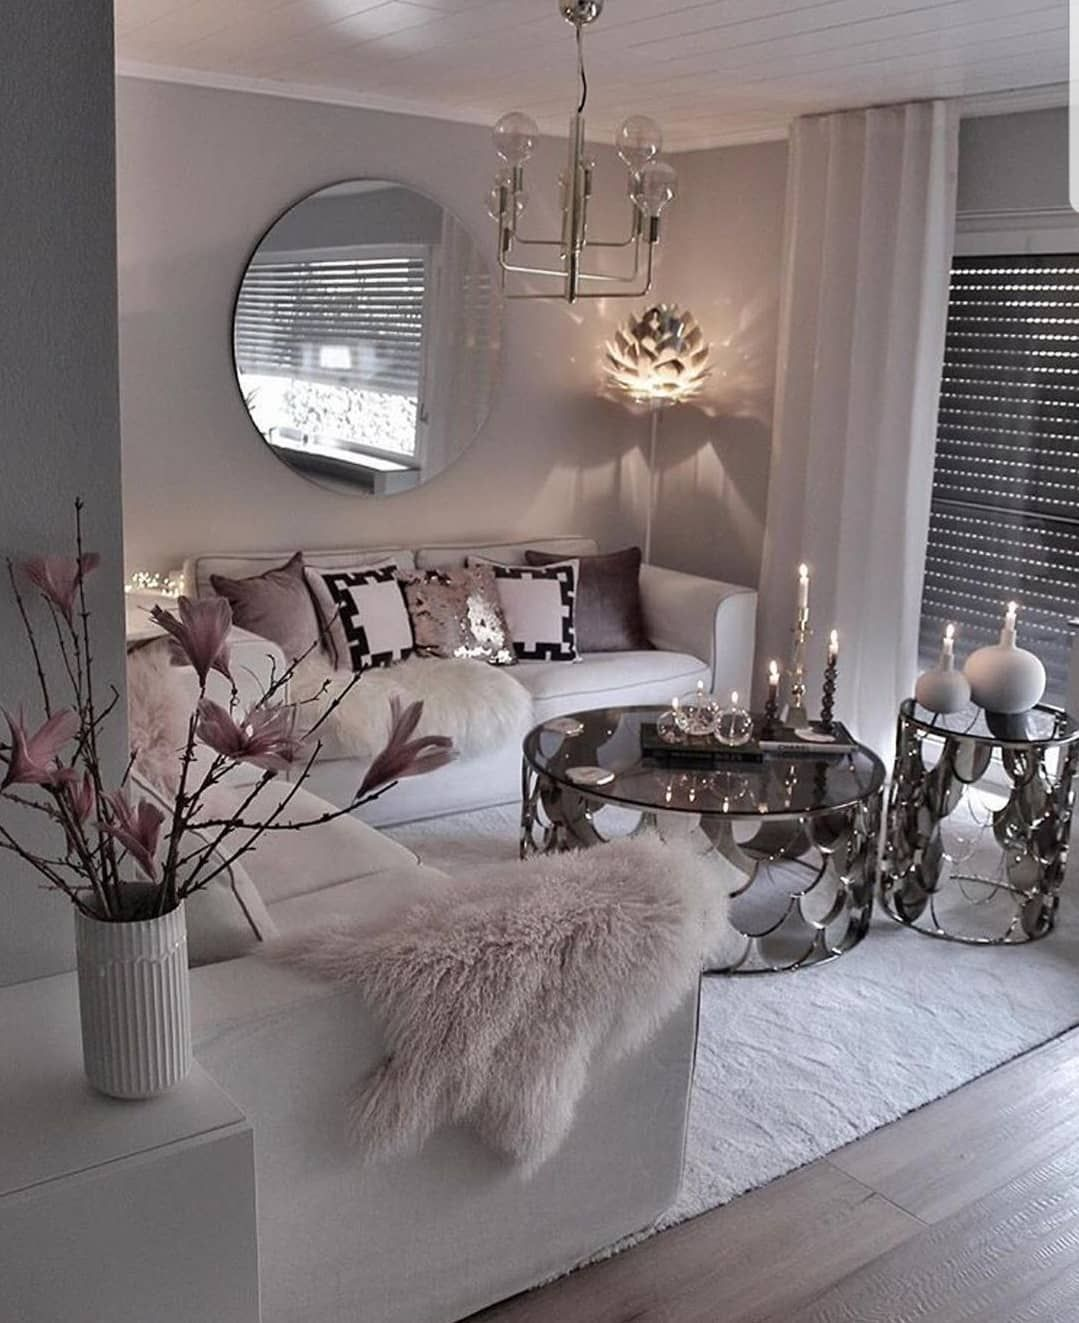 Top 70 Home Design Trends In 2020 In 2020 Living Room Decor Modern Living Room Decor Apartment Apartment Living Room Design